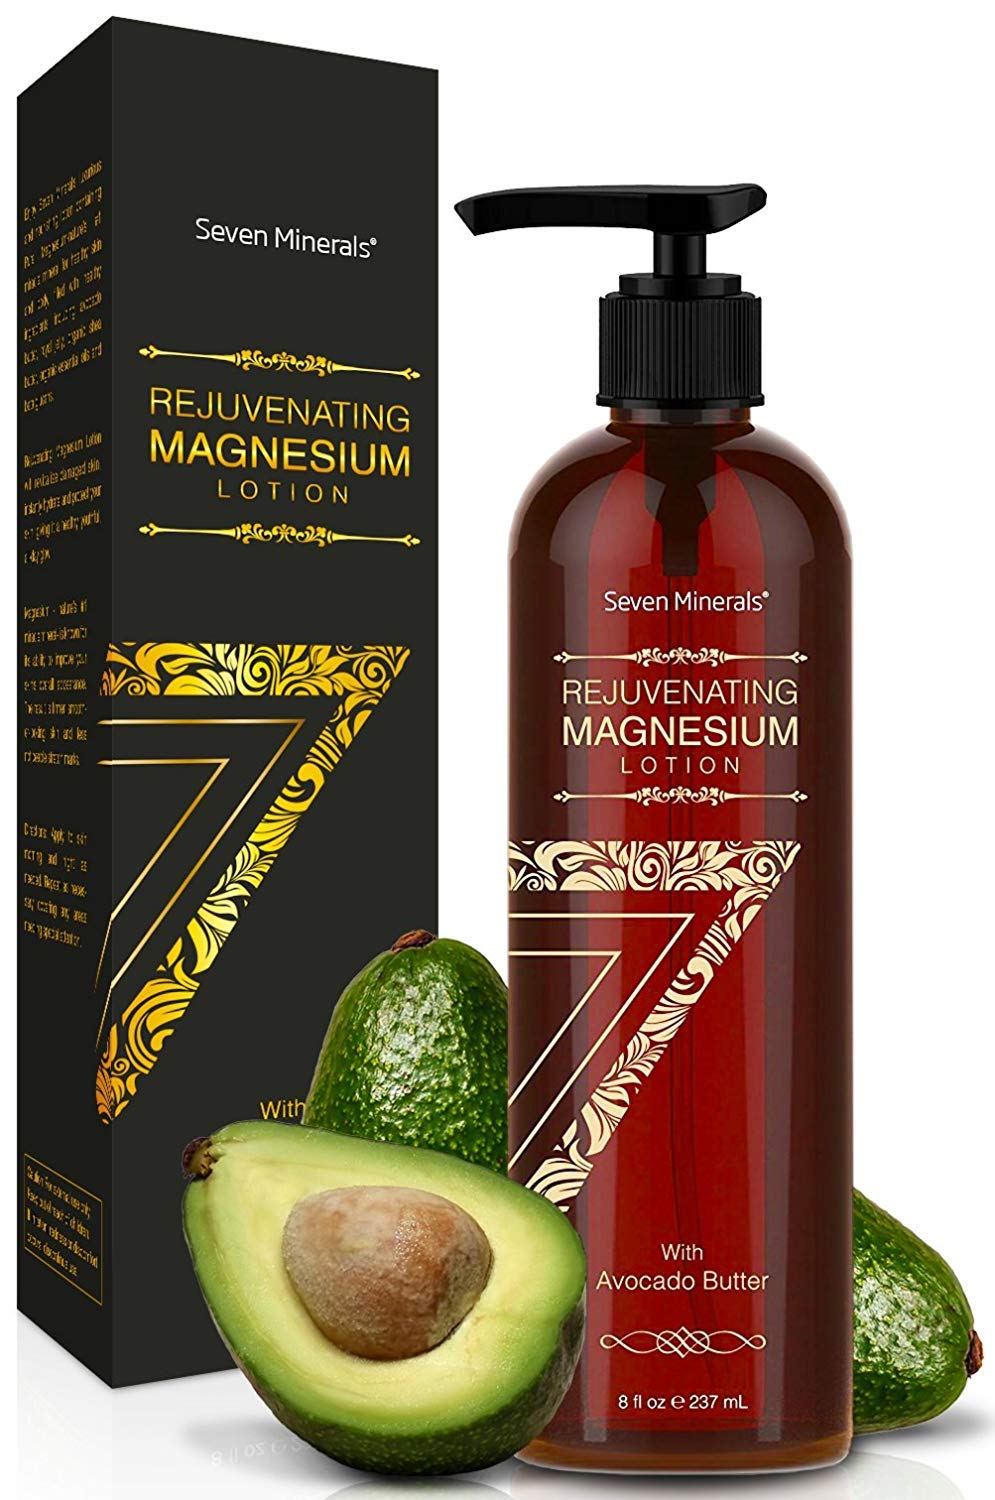 NEW Rejuvenating Magnesium Body Lotion - Healthy Daily Moisturizer - NO Endocrine Disruptors. A Total Skin Spa With Silky Avocado Butter, Anti-Aging Royal Jelly, Organic Essential Oils & More! by Seven Minerals